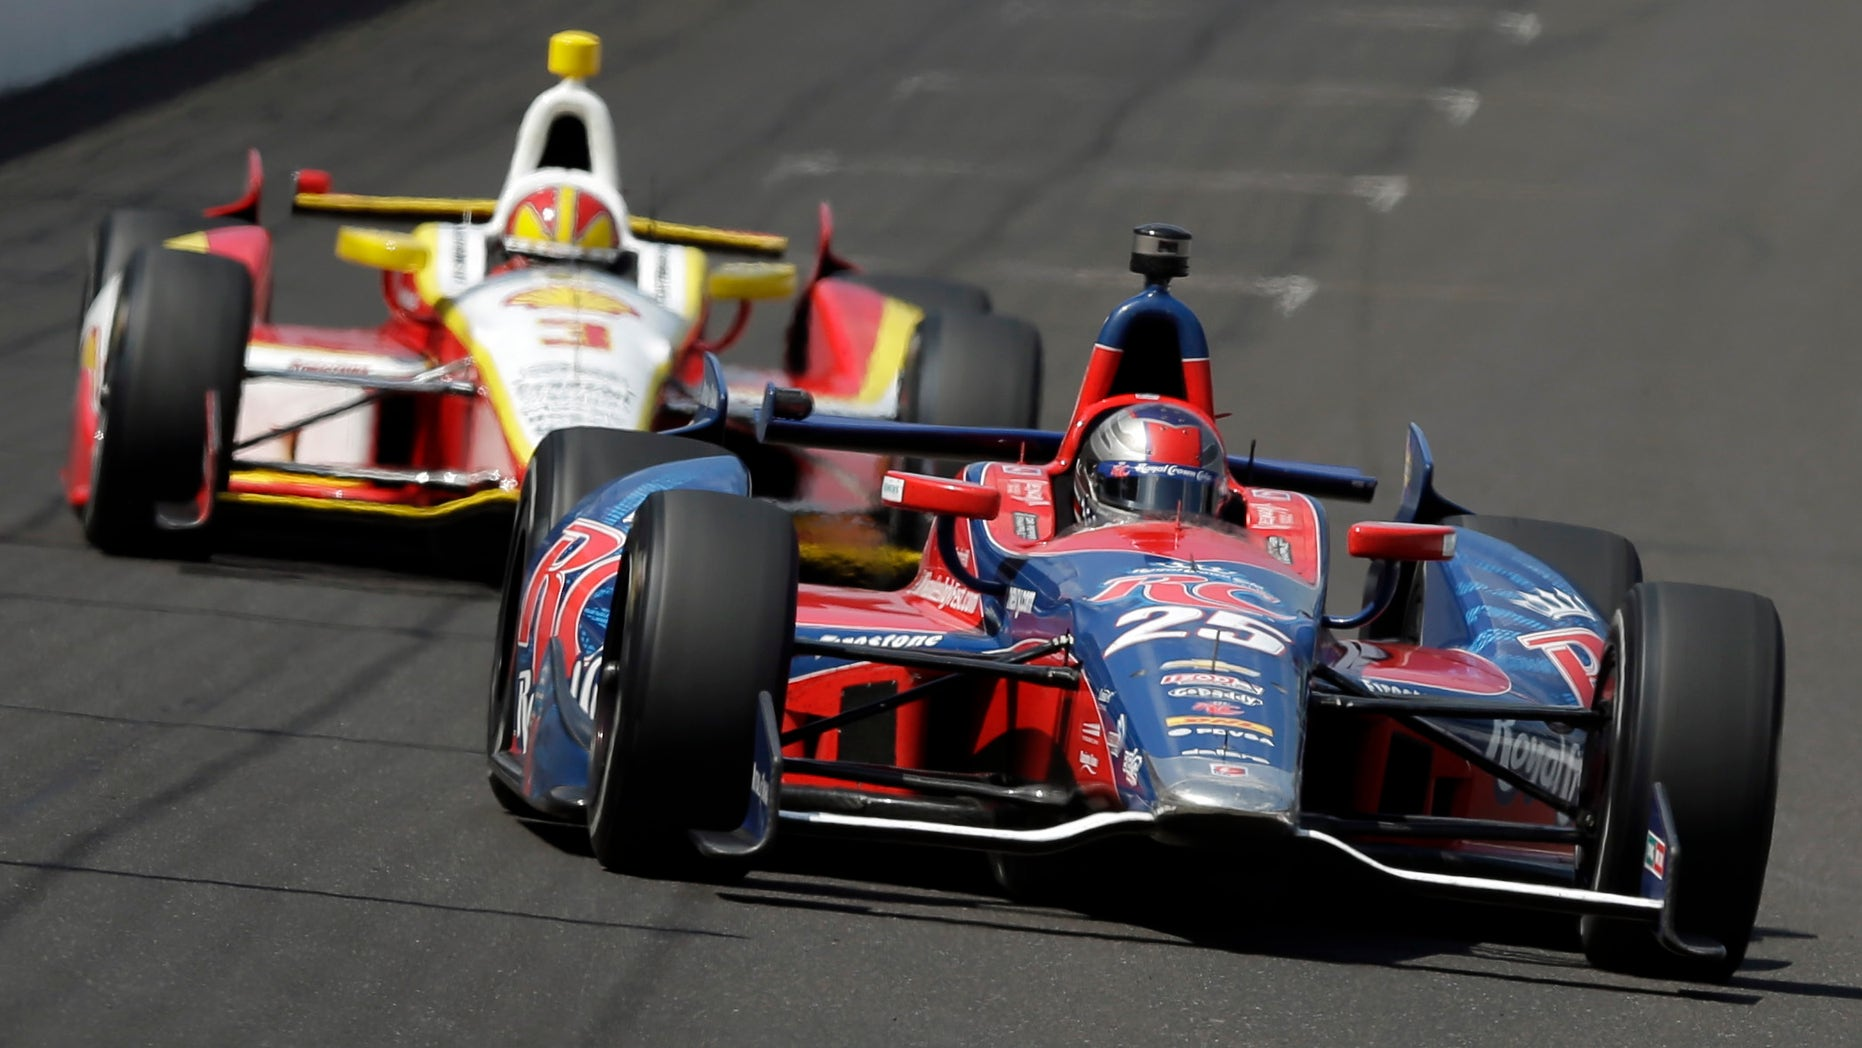 In this May 19, 2013 photo, Marco Andretti, leads Helio Castroneves, of Brazil, into the first turn on the second day of qualifications for the Indianapolis 500 auto race at the Indianapolis Motor Speedway in Indianapolis. Graham Rahal and Andretti have all the ingredients the IndyCar Series has been craving. They have famous family names, have reached Victory Lane and seem to enjoy playing up their growing rivalry.  (AP Photo/Darron Cummings)